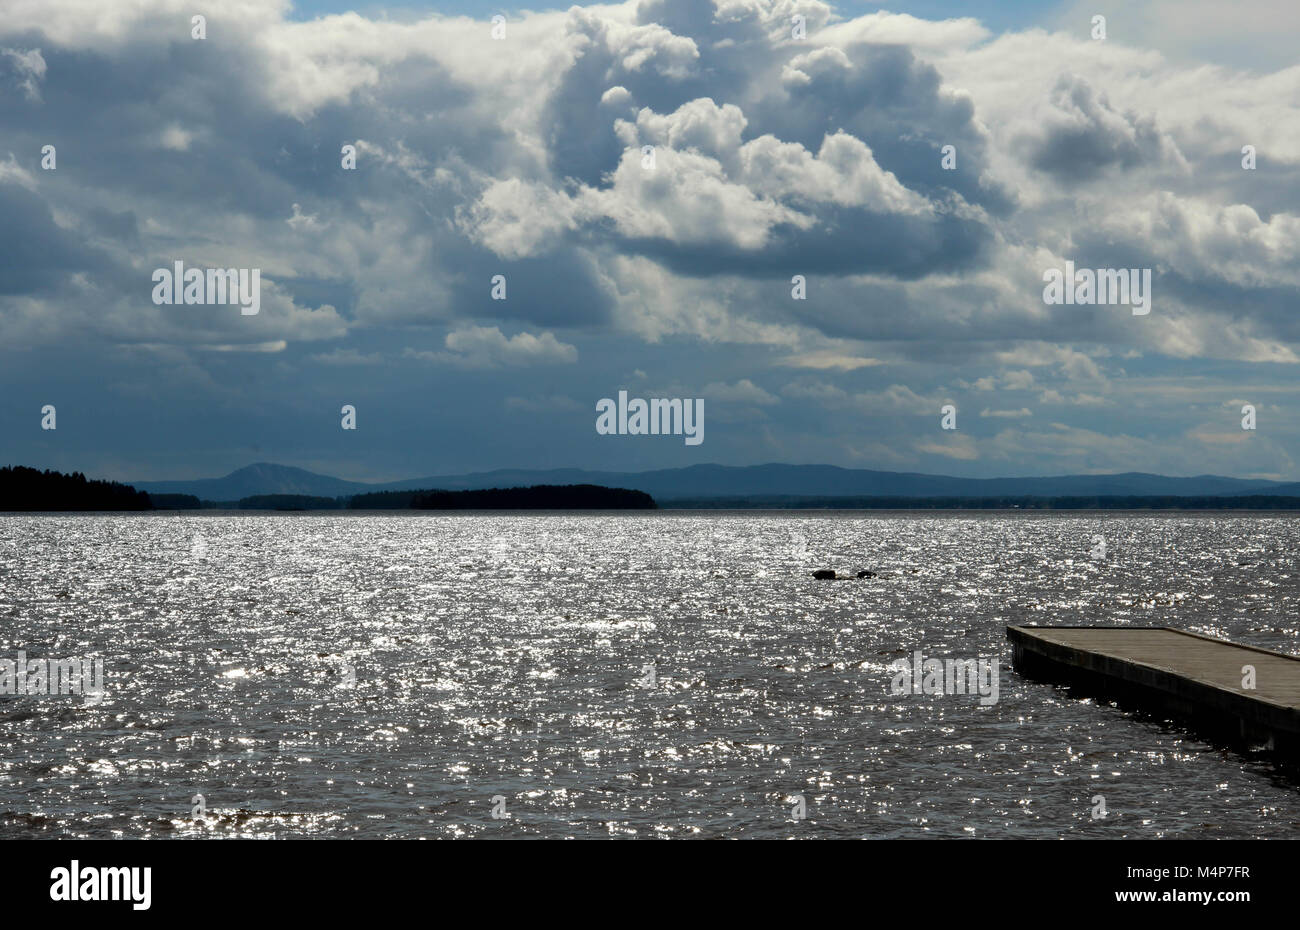 A bridge in a big lake with glittering waves, and mountains in the background. - Stock Image